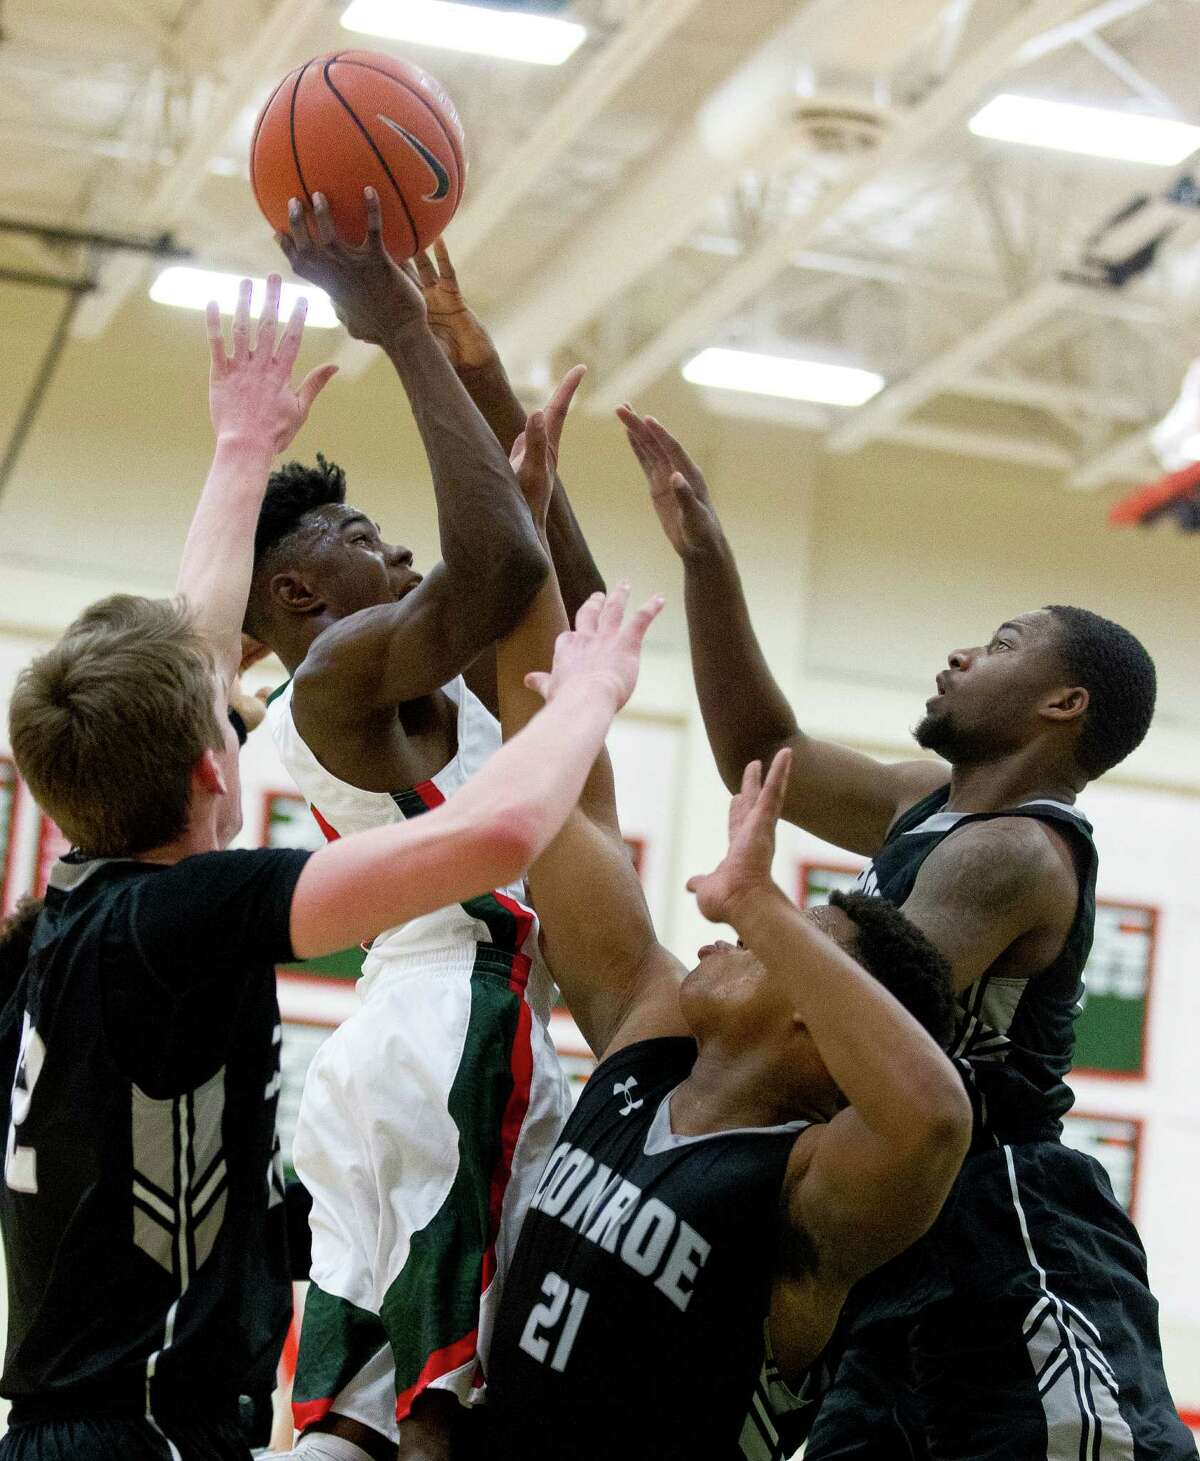 The Woodlandsguard Kesean Carter (12) shoots under pressure from Conroe center Lavery Sheperd (21), guard Blain Alger (22) and forward Quentin Brown (12) during the first quarter of a District 12-6A high school boys basketball game at The Woodlands High School Tuesday, Feb. 7, 2017, in The Woodlands. The Woodlandsdefeated Conroe 72-52.